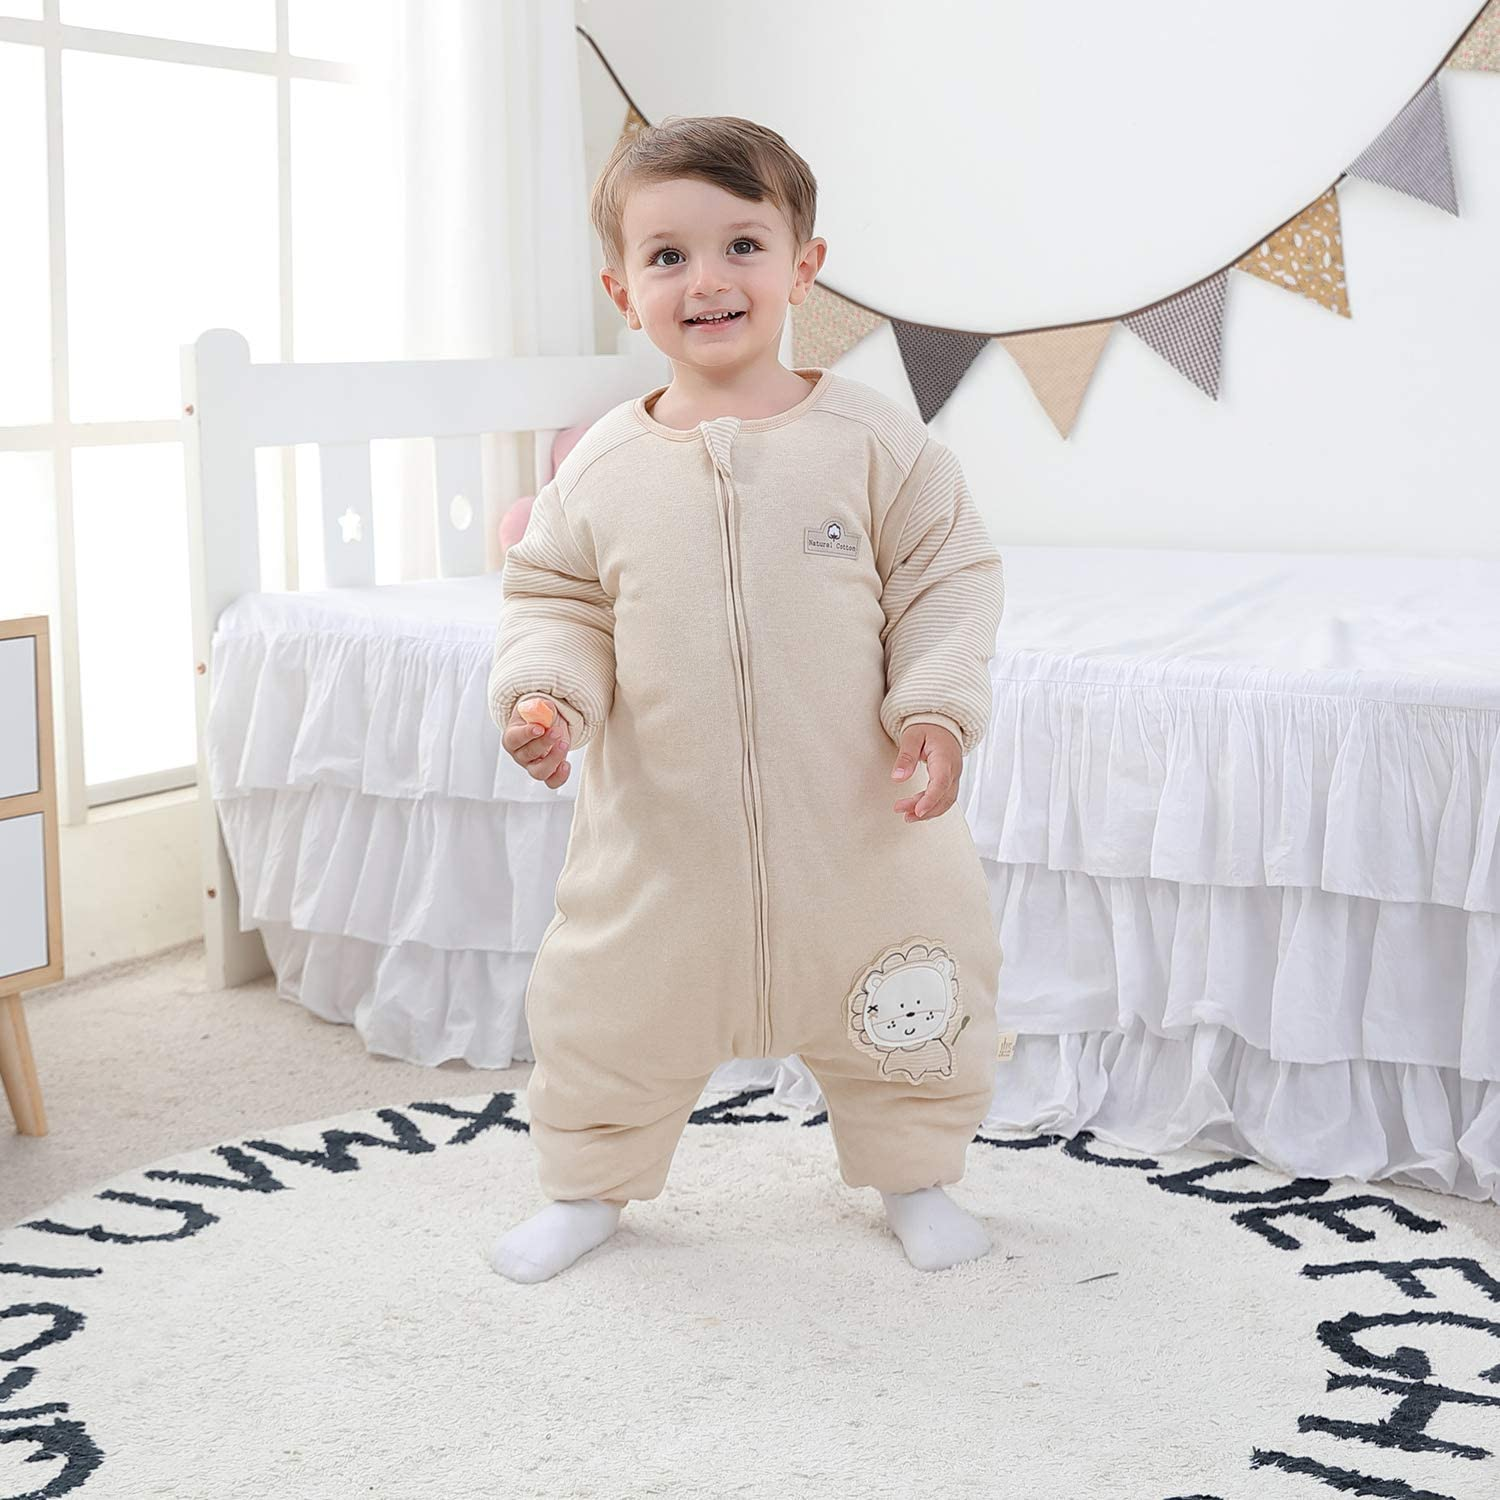 Bear,80 Baby Height 31-35 inches Mosebears Baby Winter Sleeping Bag with Legs Baby Sleep Sack for Toddler Thicken 2.5 TOG